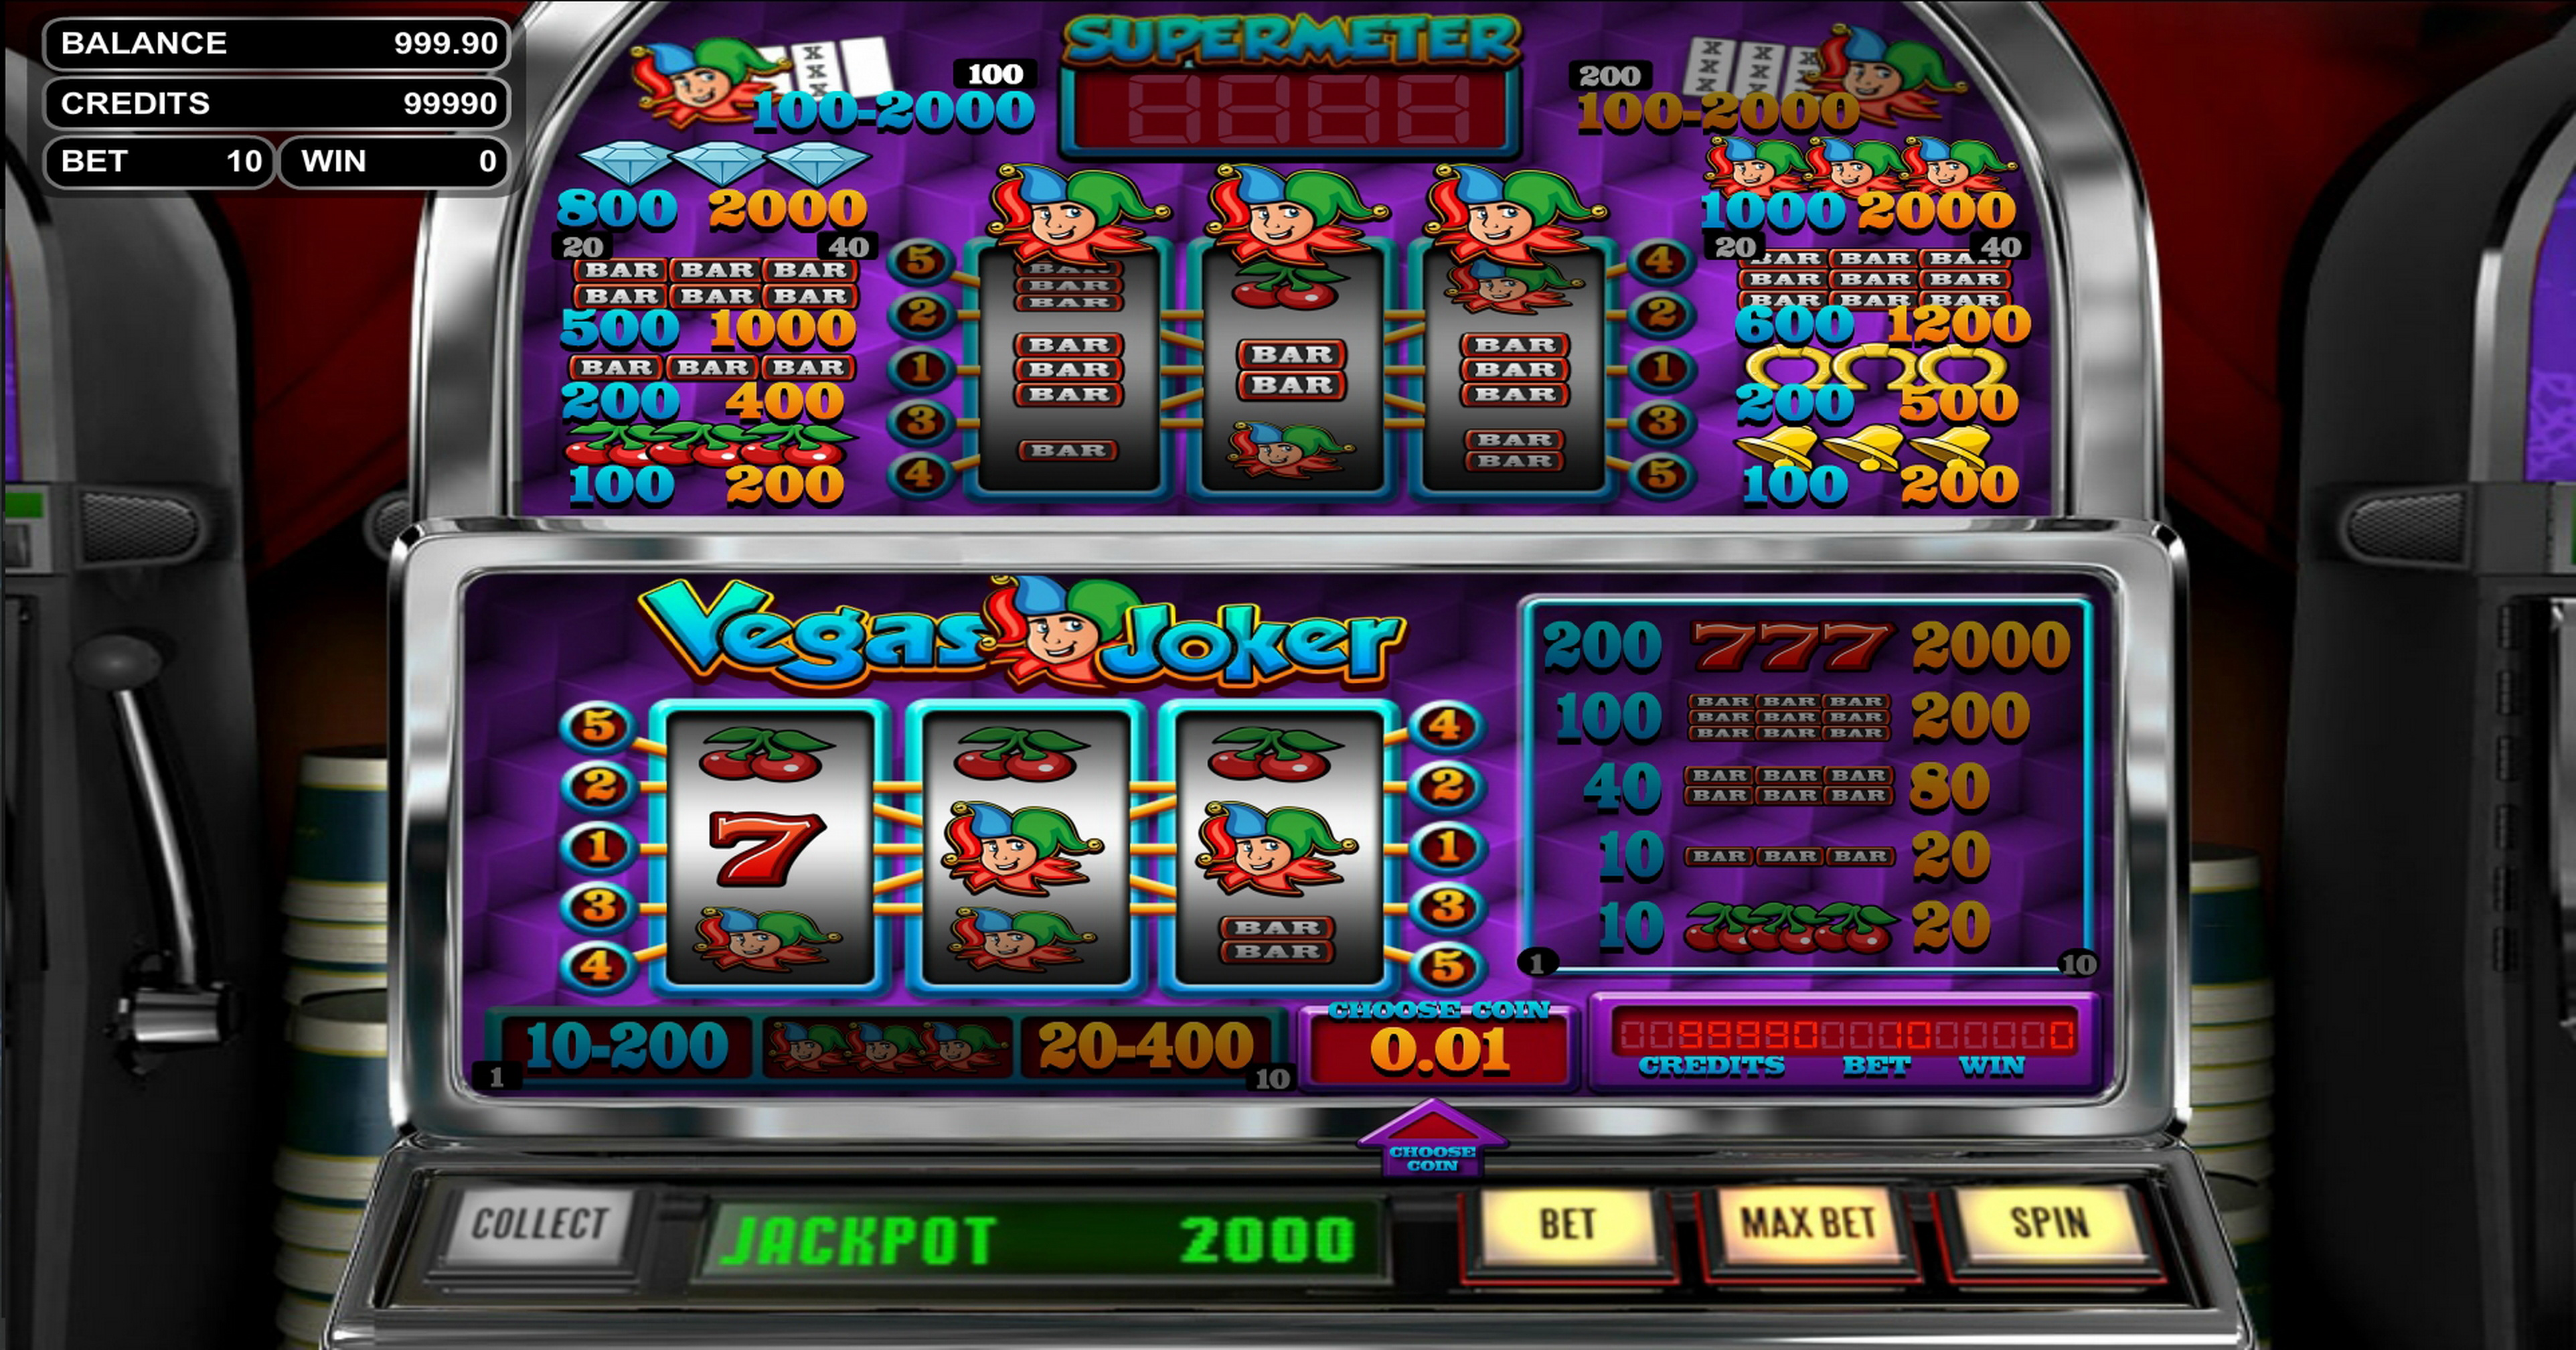 Reels in Vegas Joker Slot Game by Betsoft